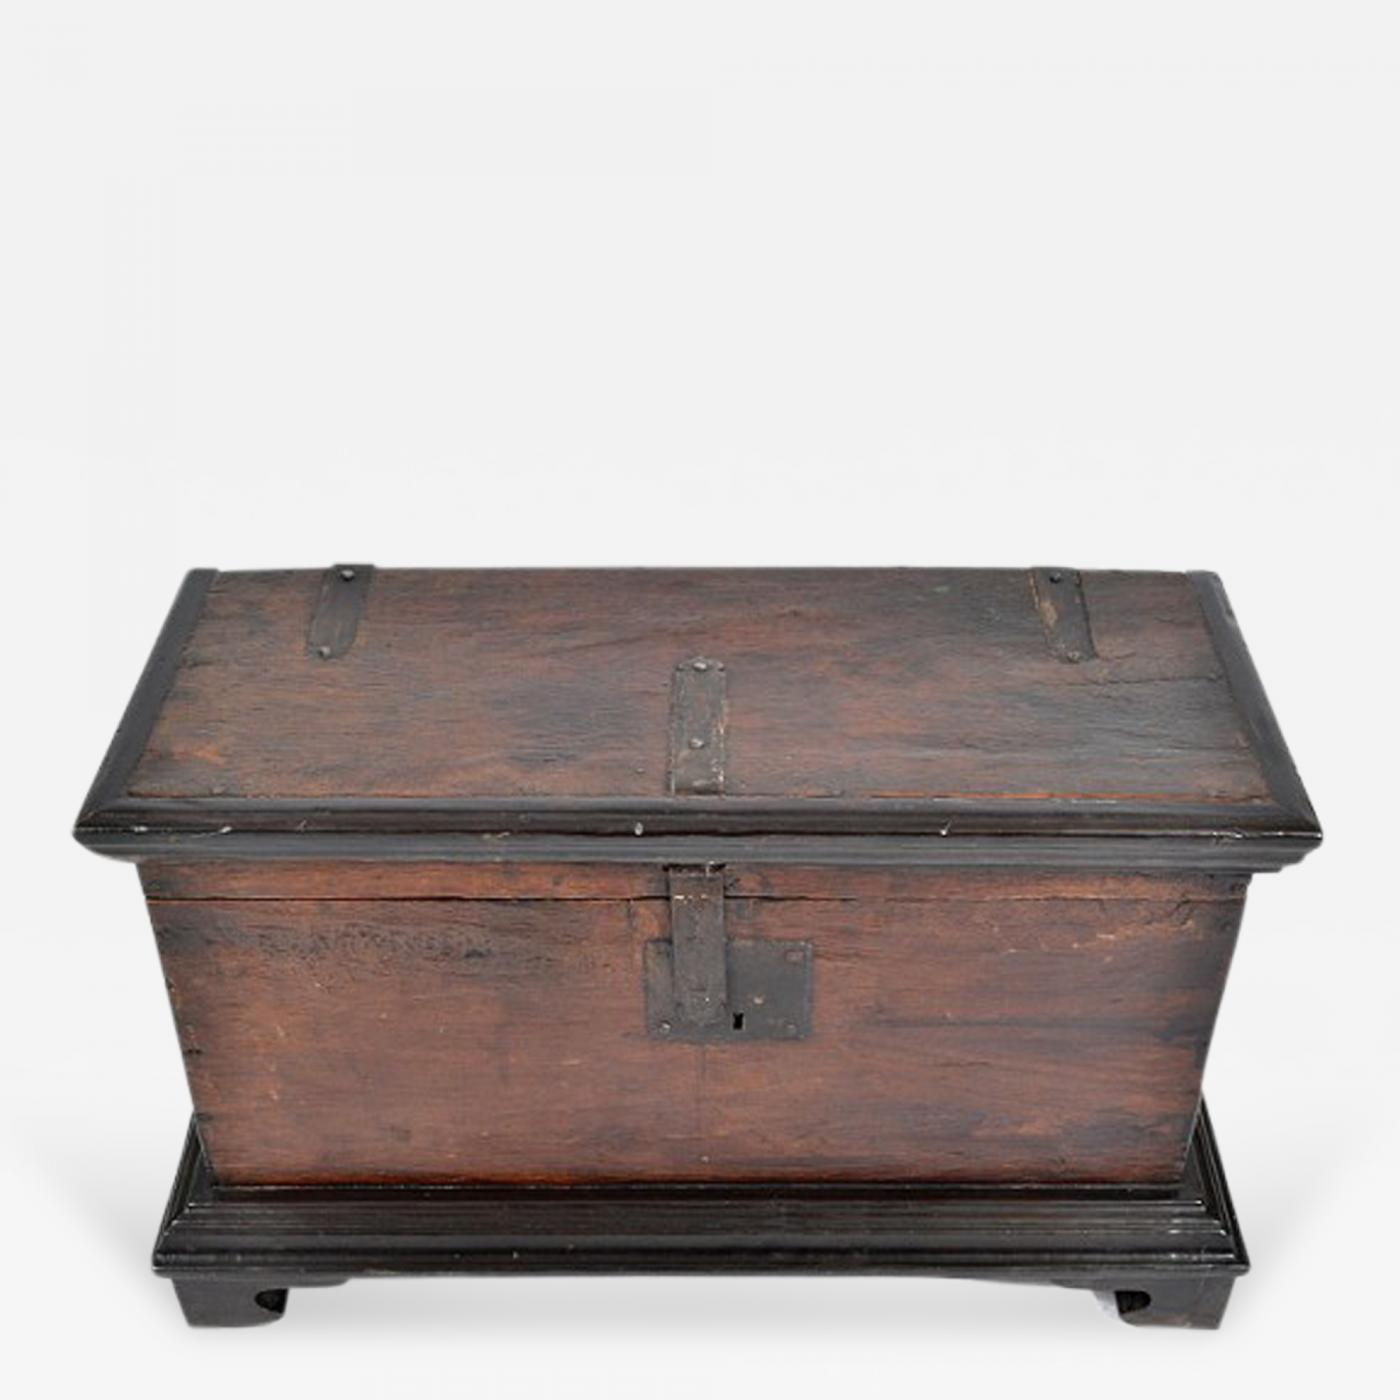 Antique Spanish Colonial Rosewood and Ebony Document Box 18th C